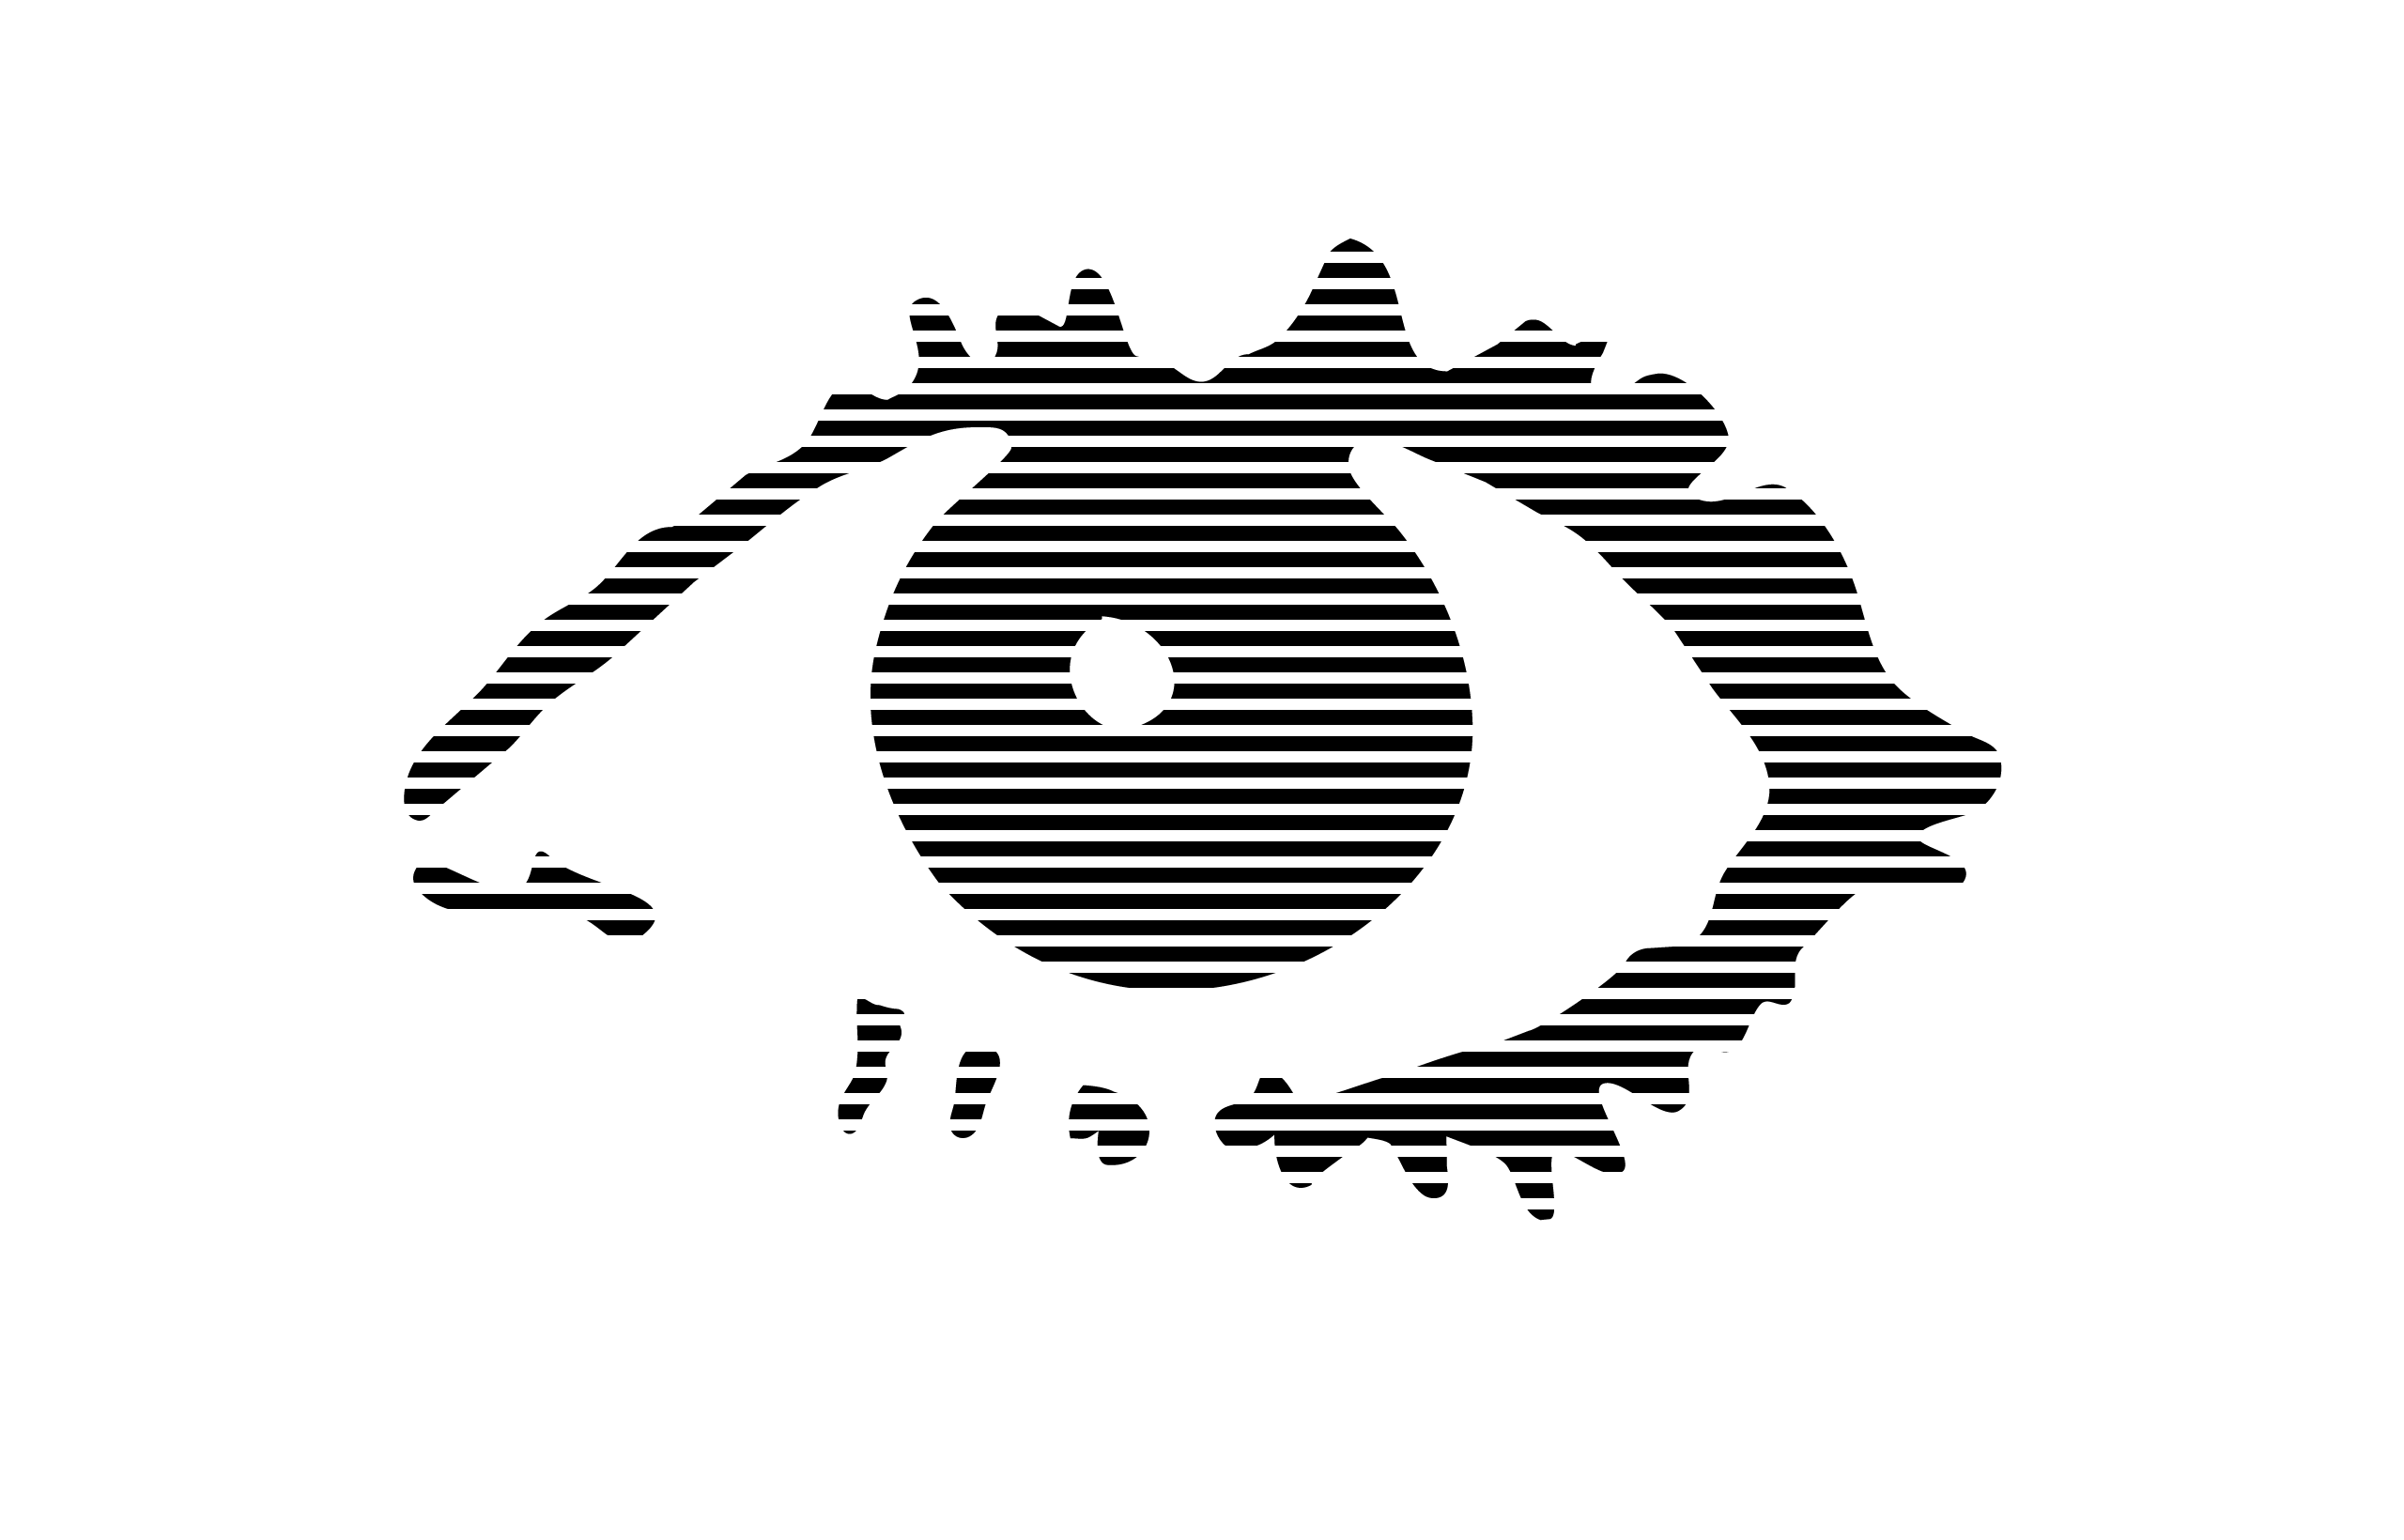 Big Brother II logo designed by Dan Forster